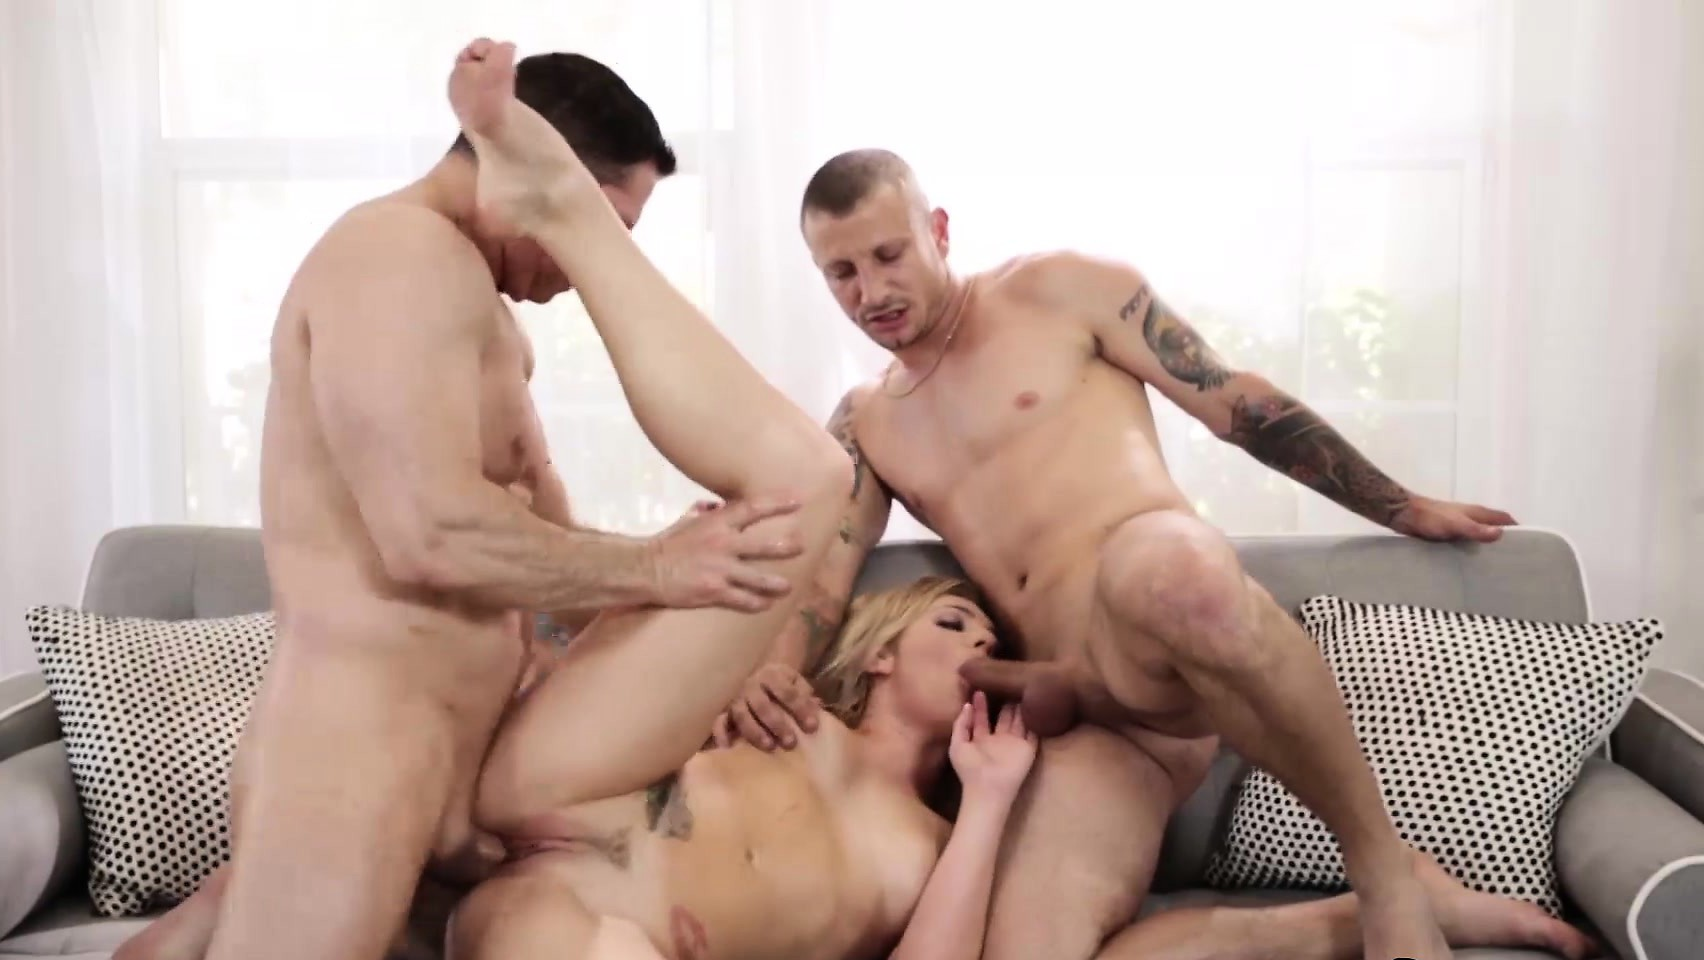 Blonde Girl Dahlia Heaven Gets Hammered In Hard Threesome